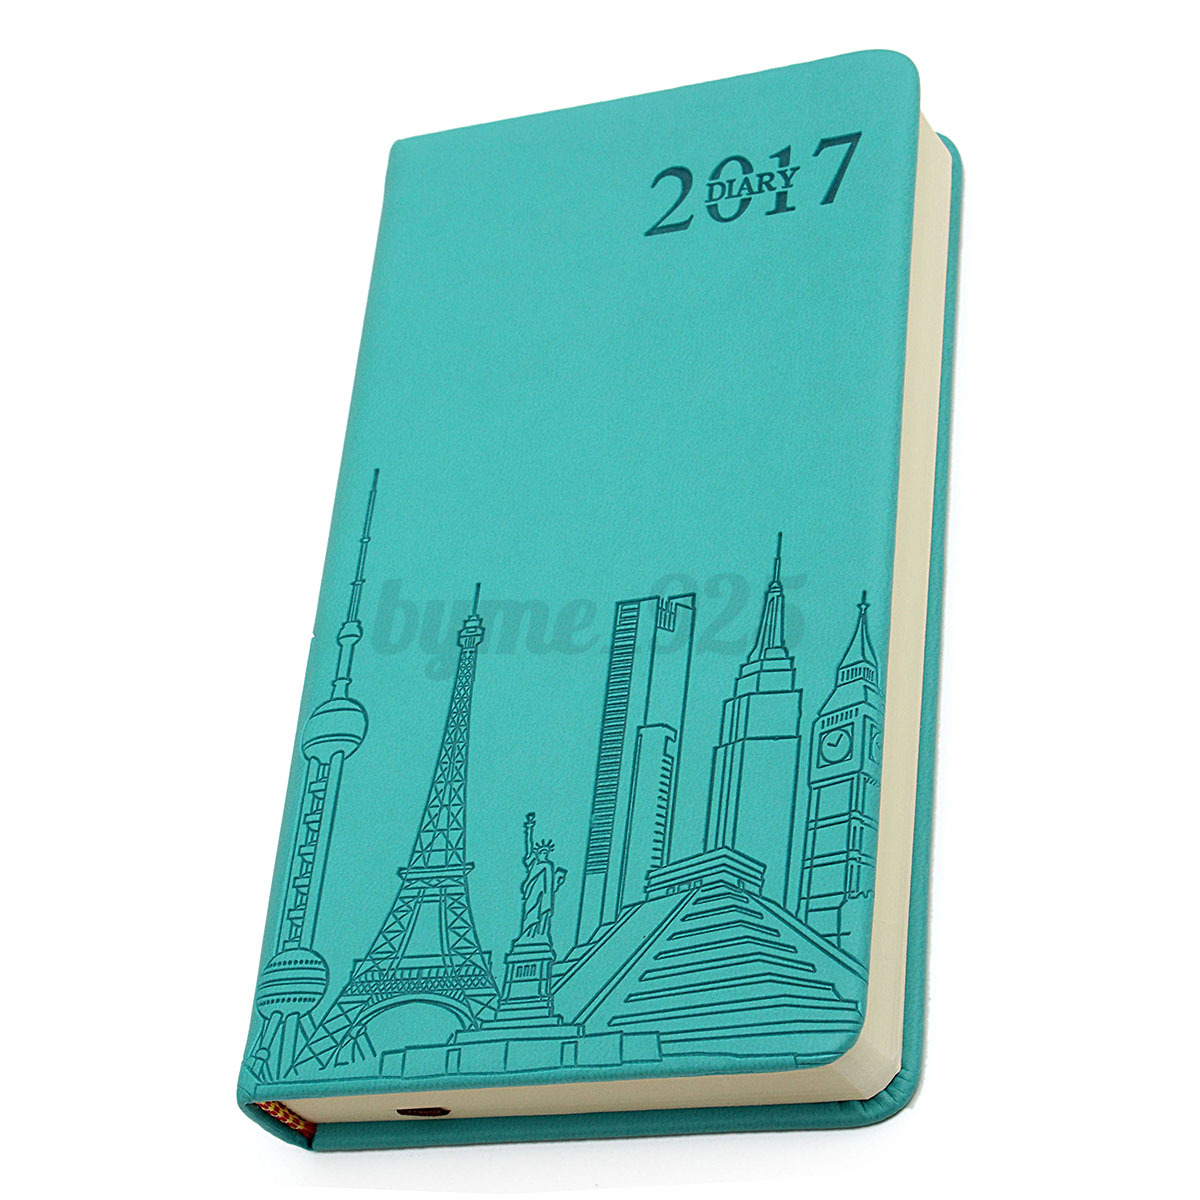 Monthly Calendar Notebook : Yearly monthly day planner schedule leather notebook